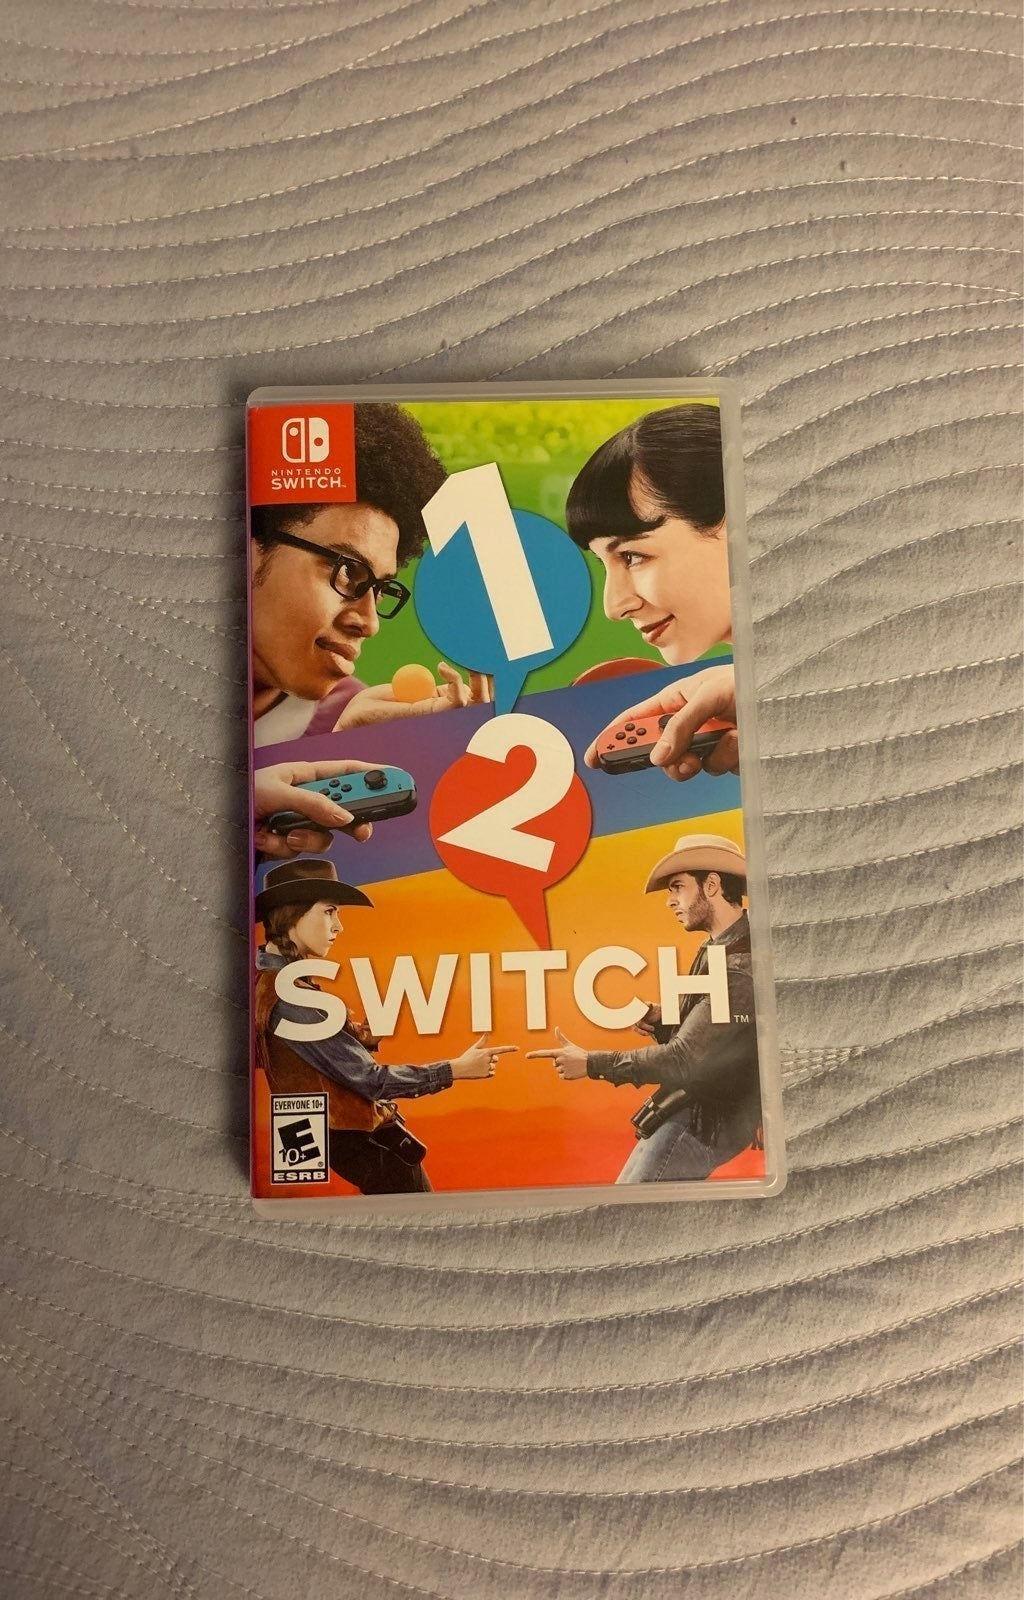 1-2-Switch on Nintendo Switch (USED)